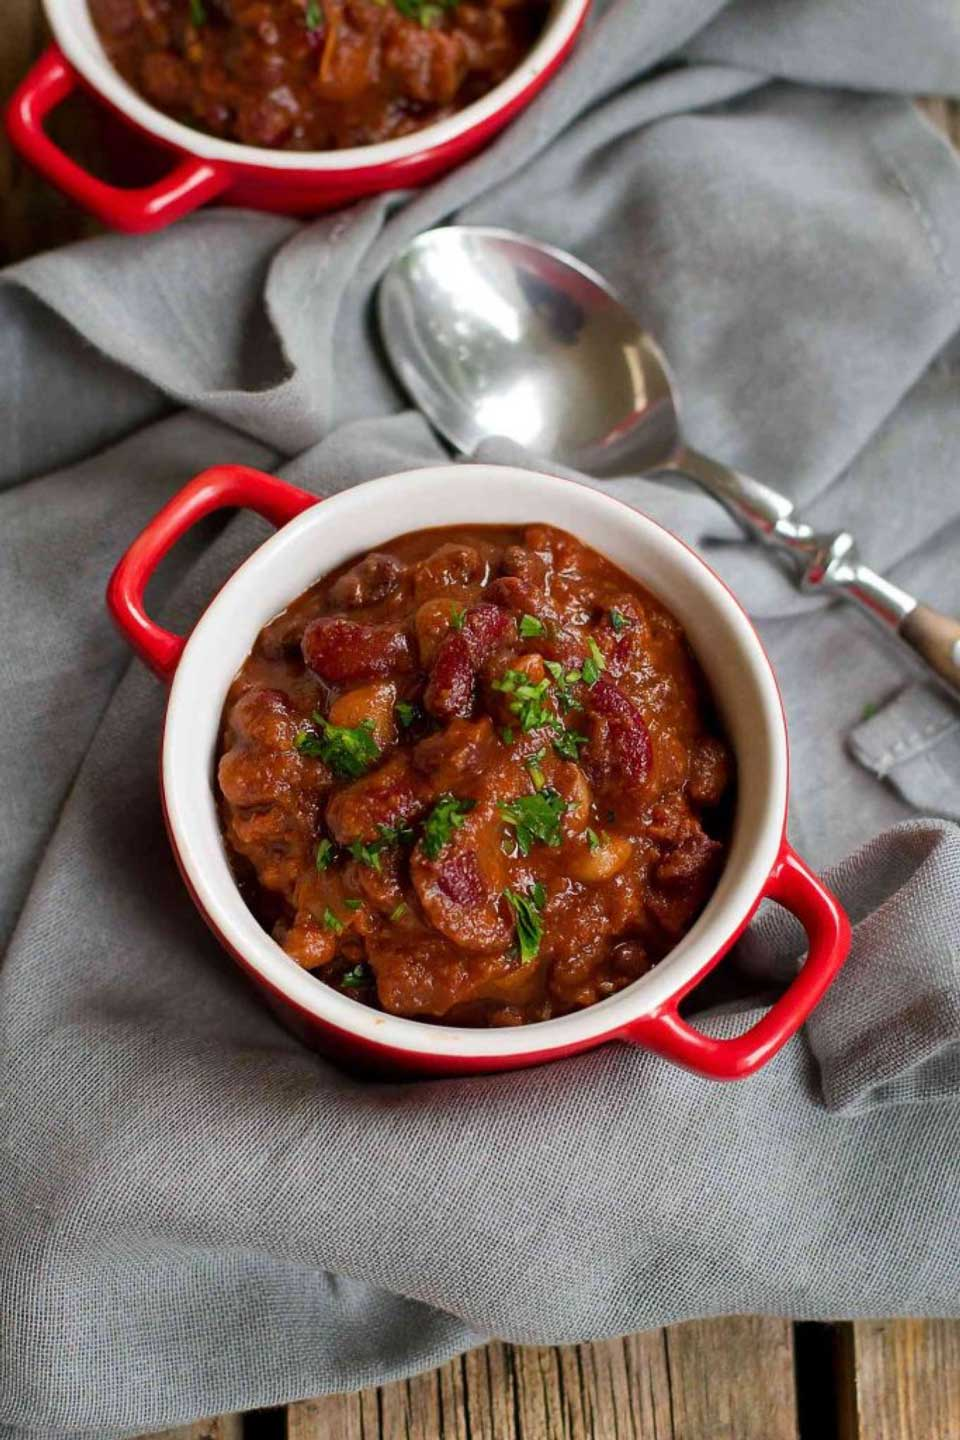 What could be simpler or more comforting on a chilly evening? Instant Pot Vegetarian Chili from Dara at Cookin' Canuck + 16 more comforting, easy chili recipes for your electric pressure cooker!